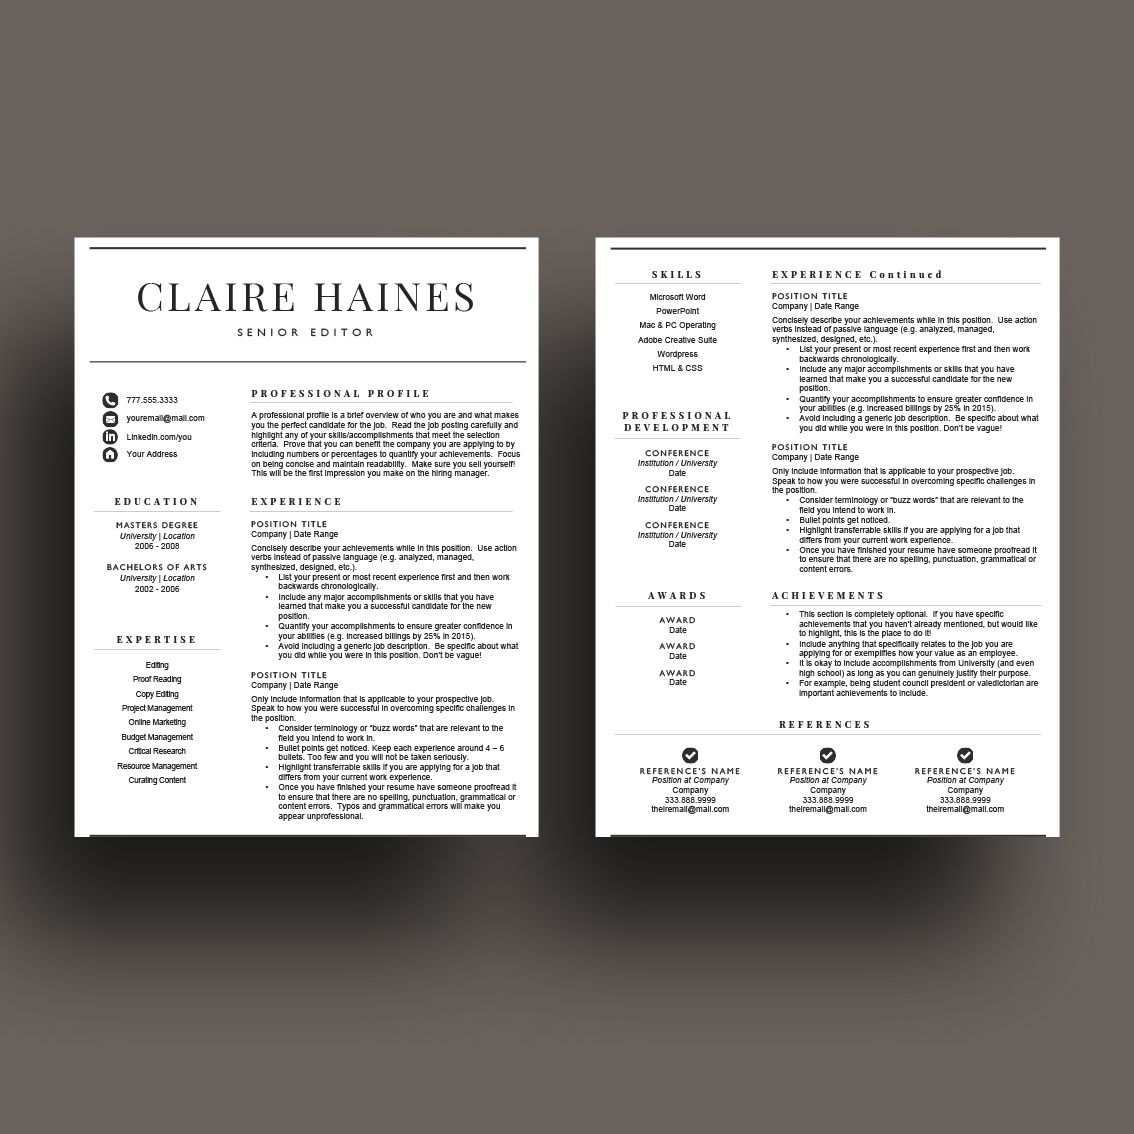 Professional 2 page resume template for 15.00. Designed